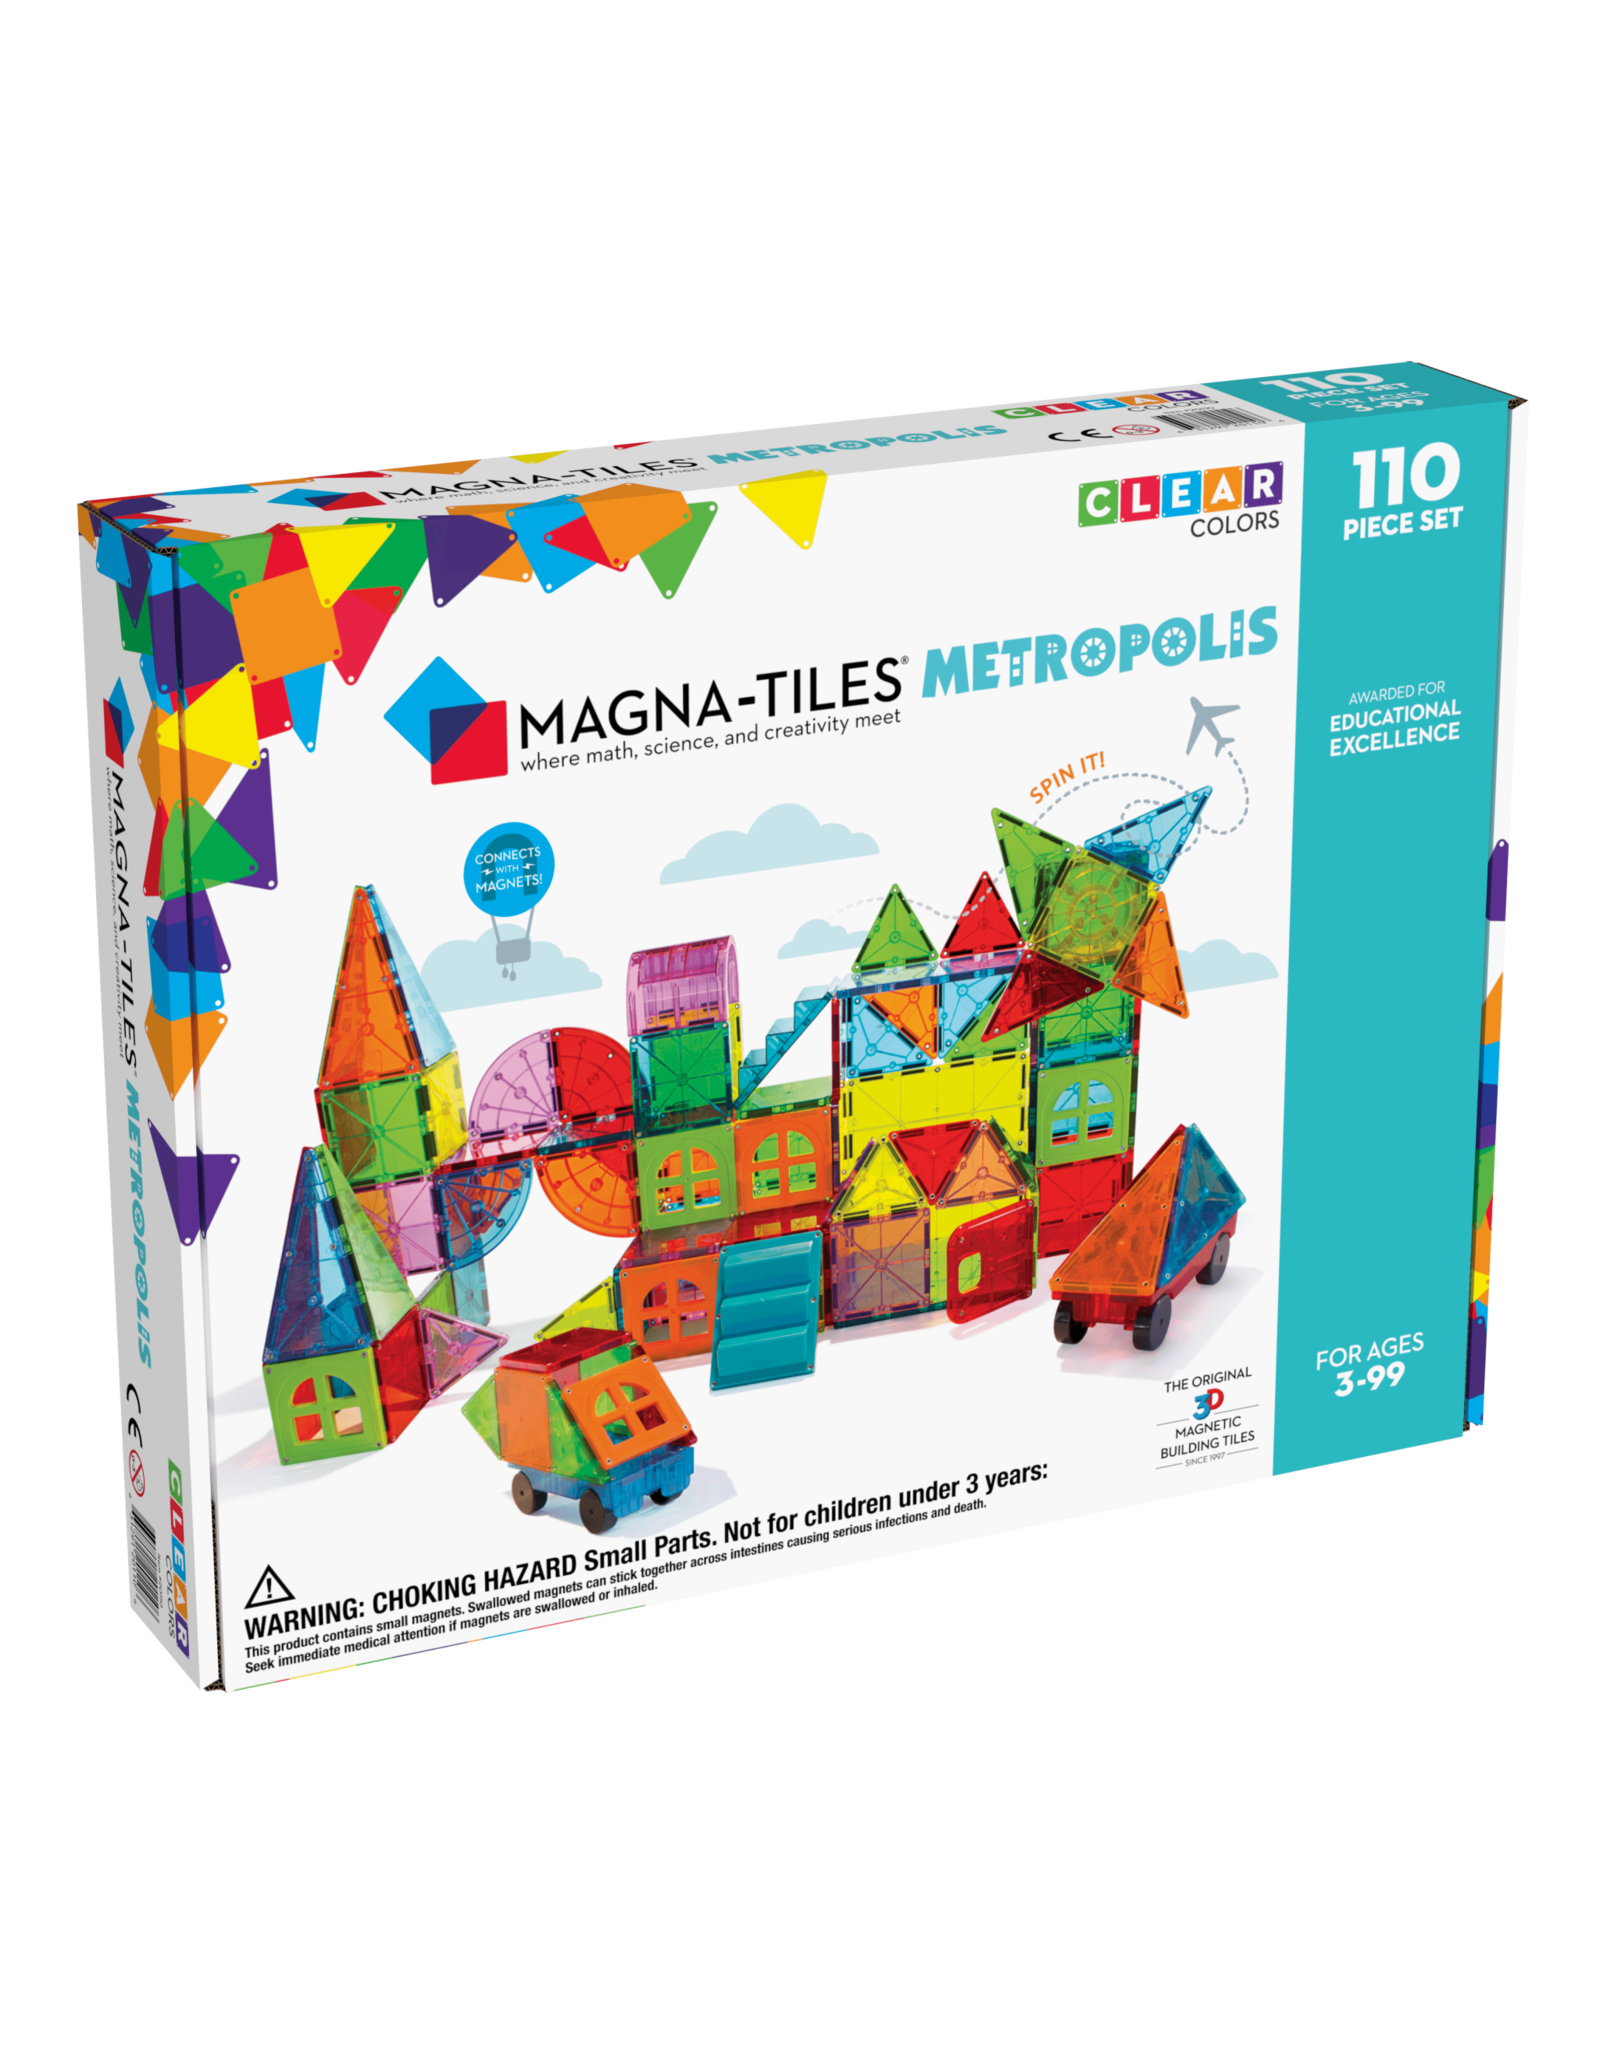 Magna-Tiles® Metropolis 110 Piece Set